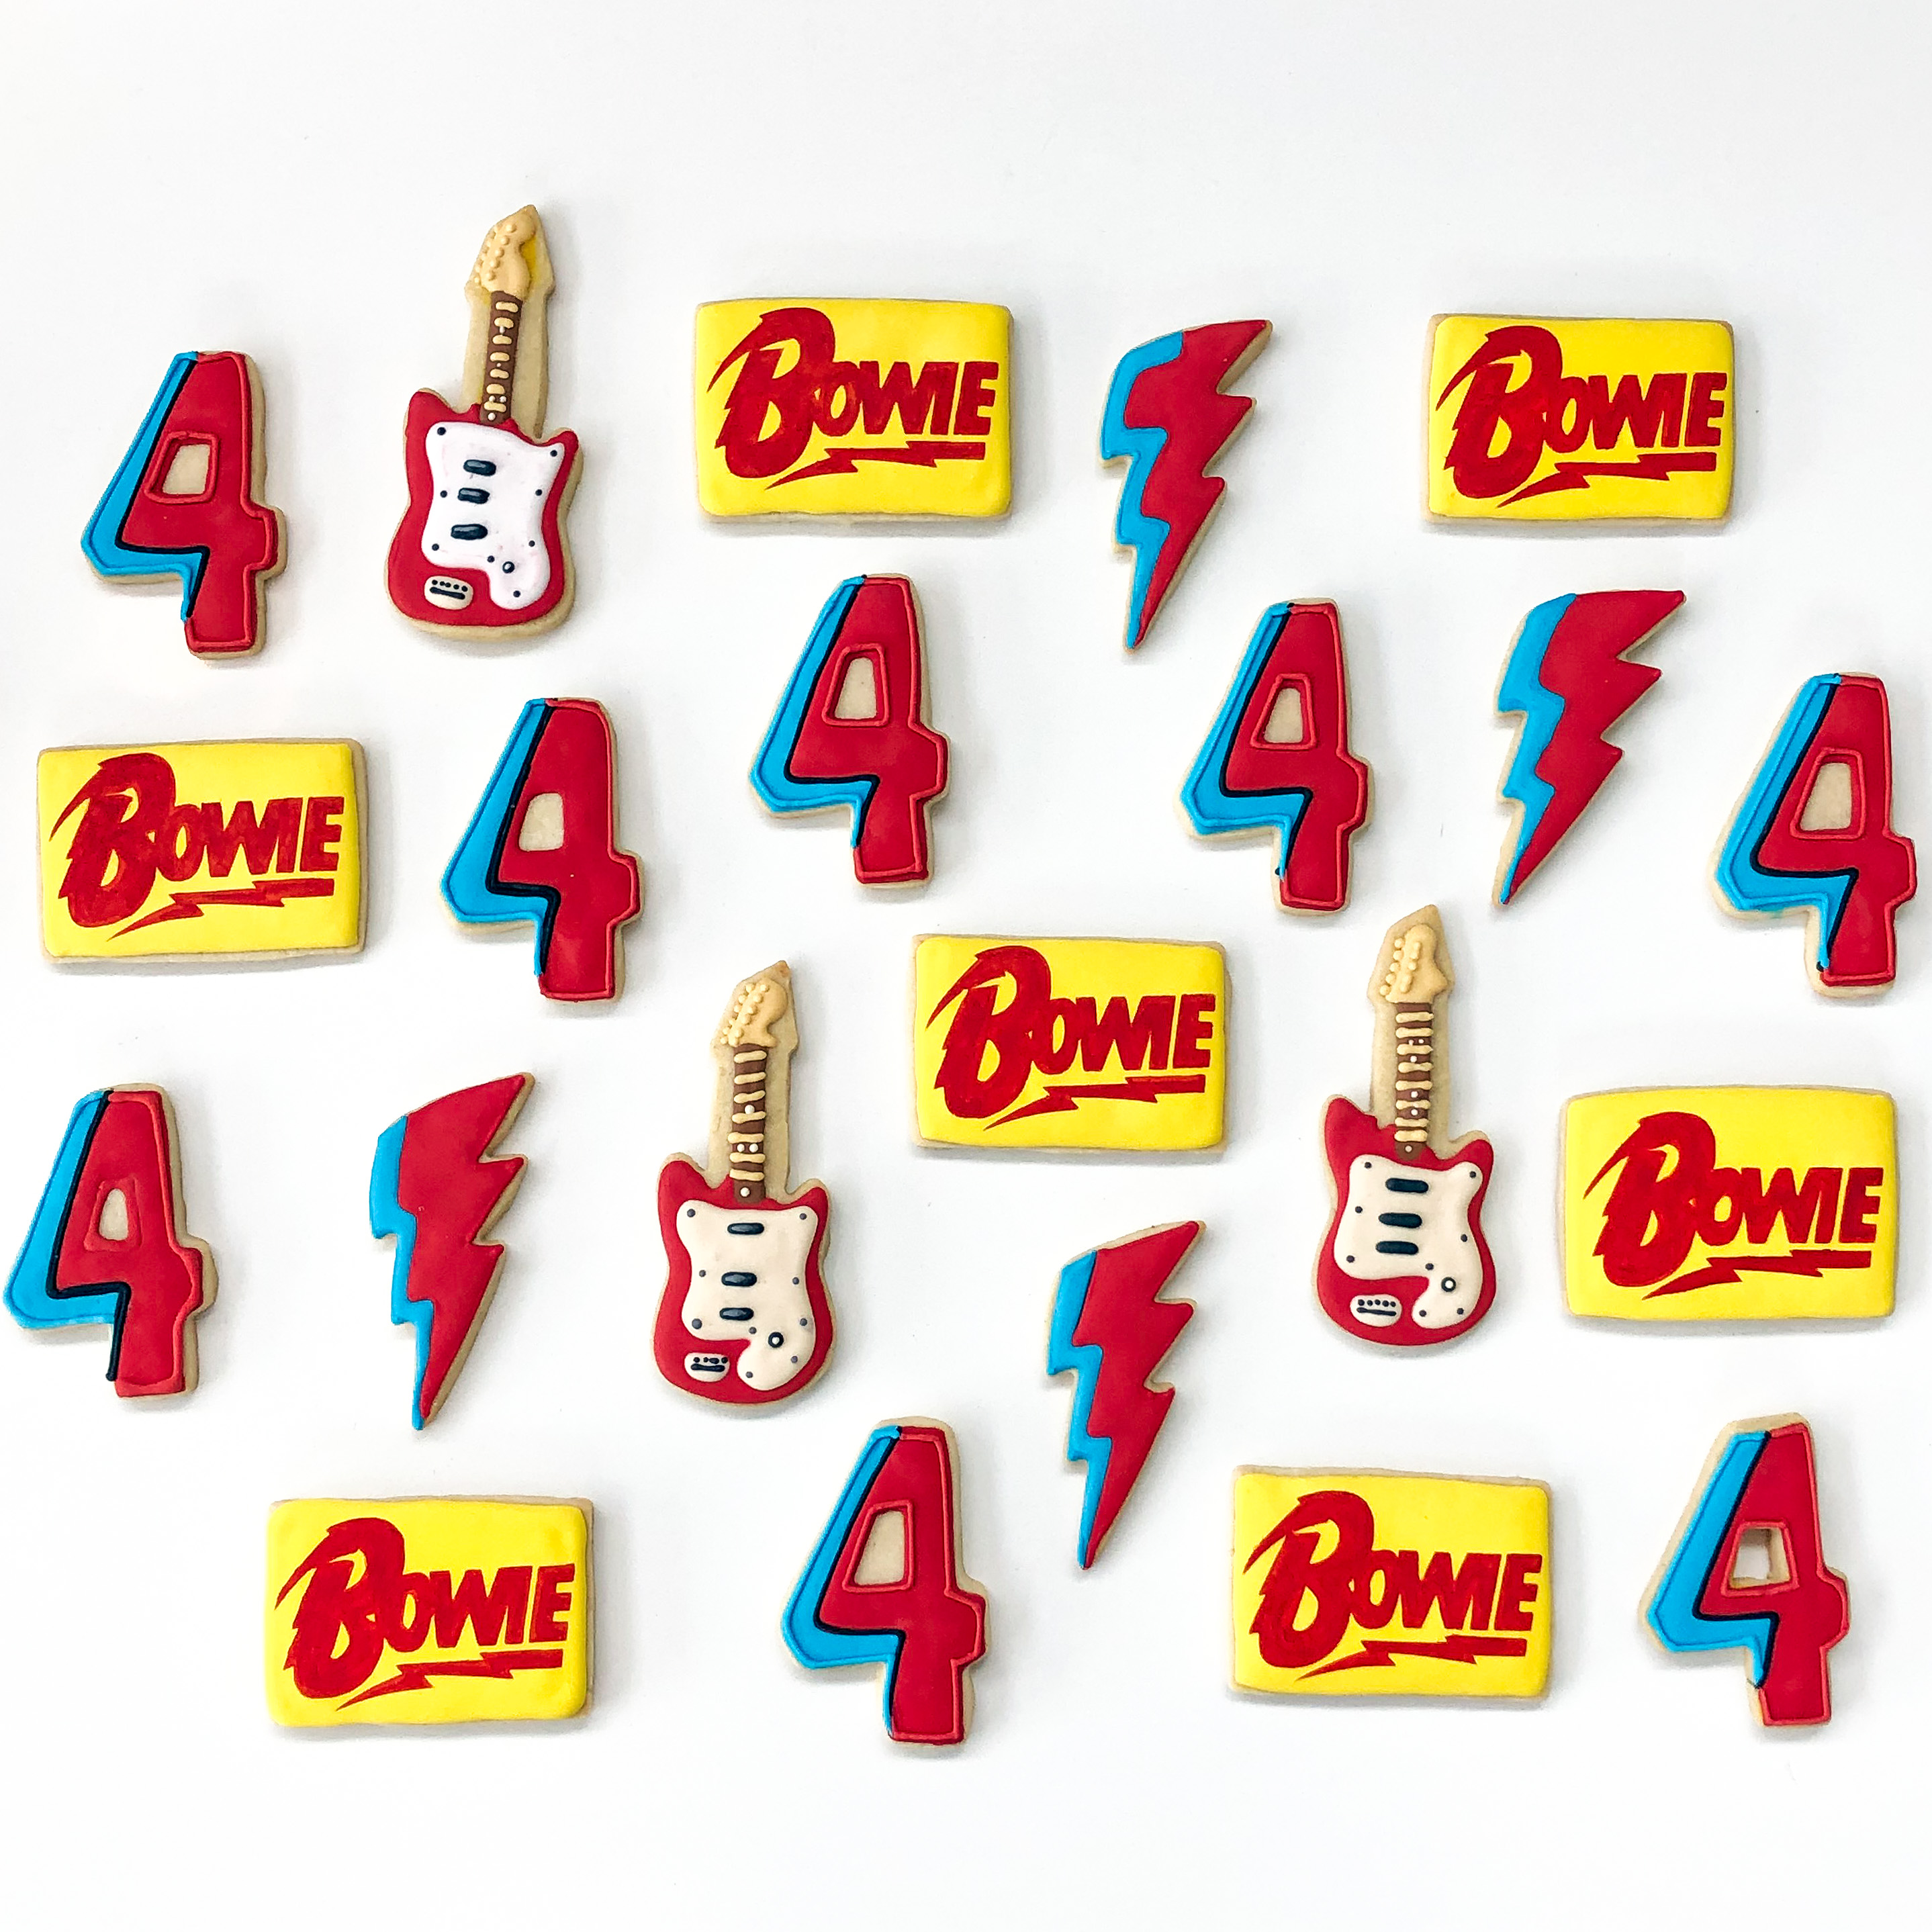 David Bowie Cookies Los Angeles California Hilarystyle